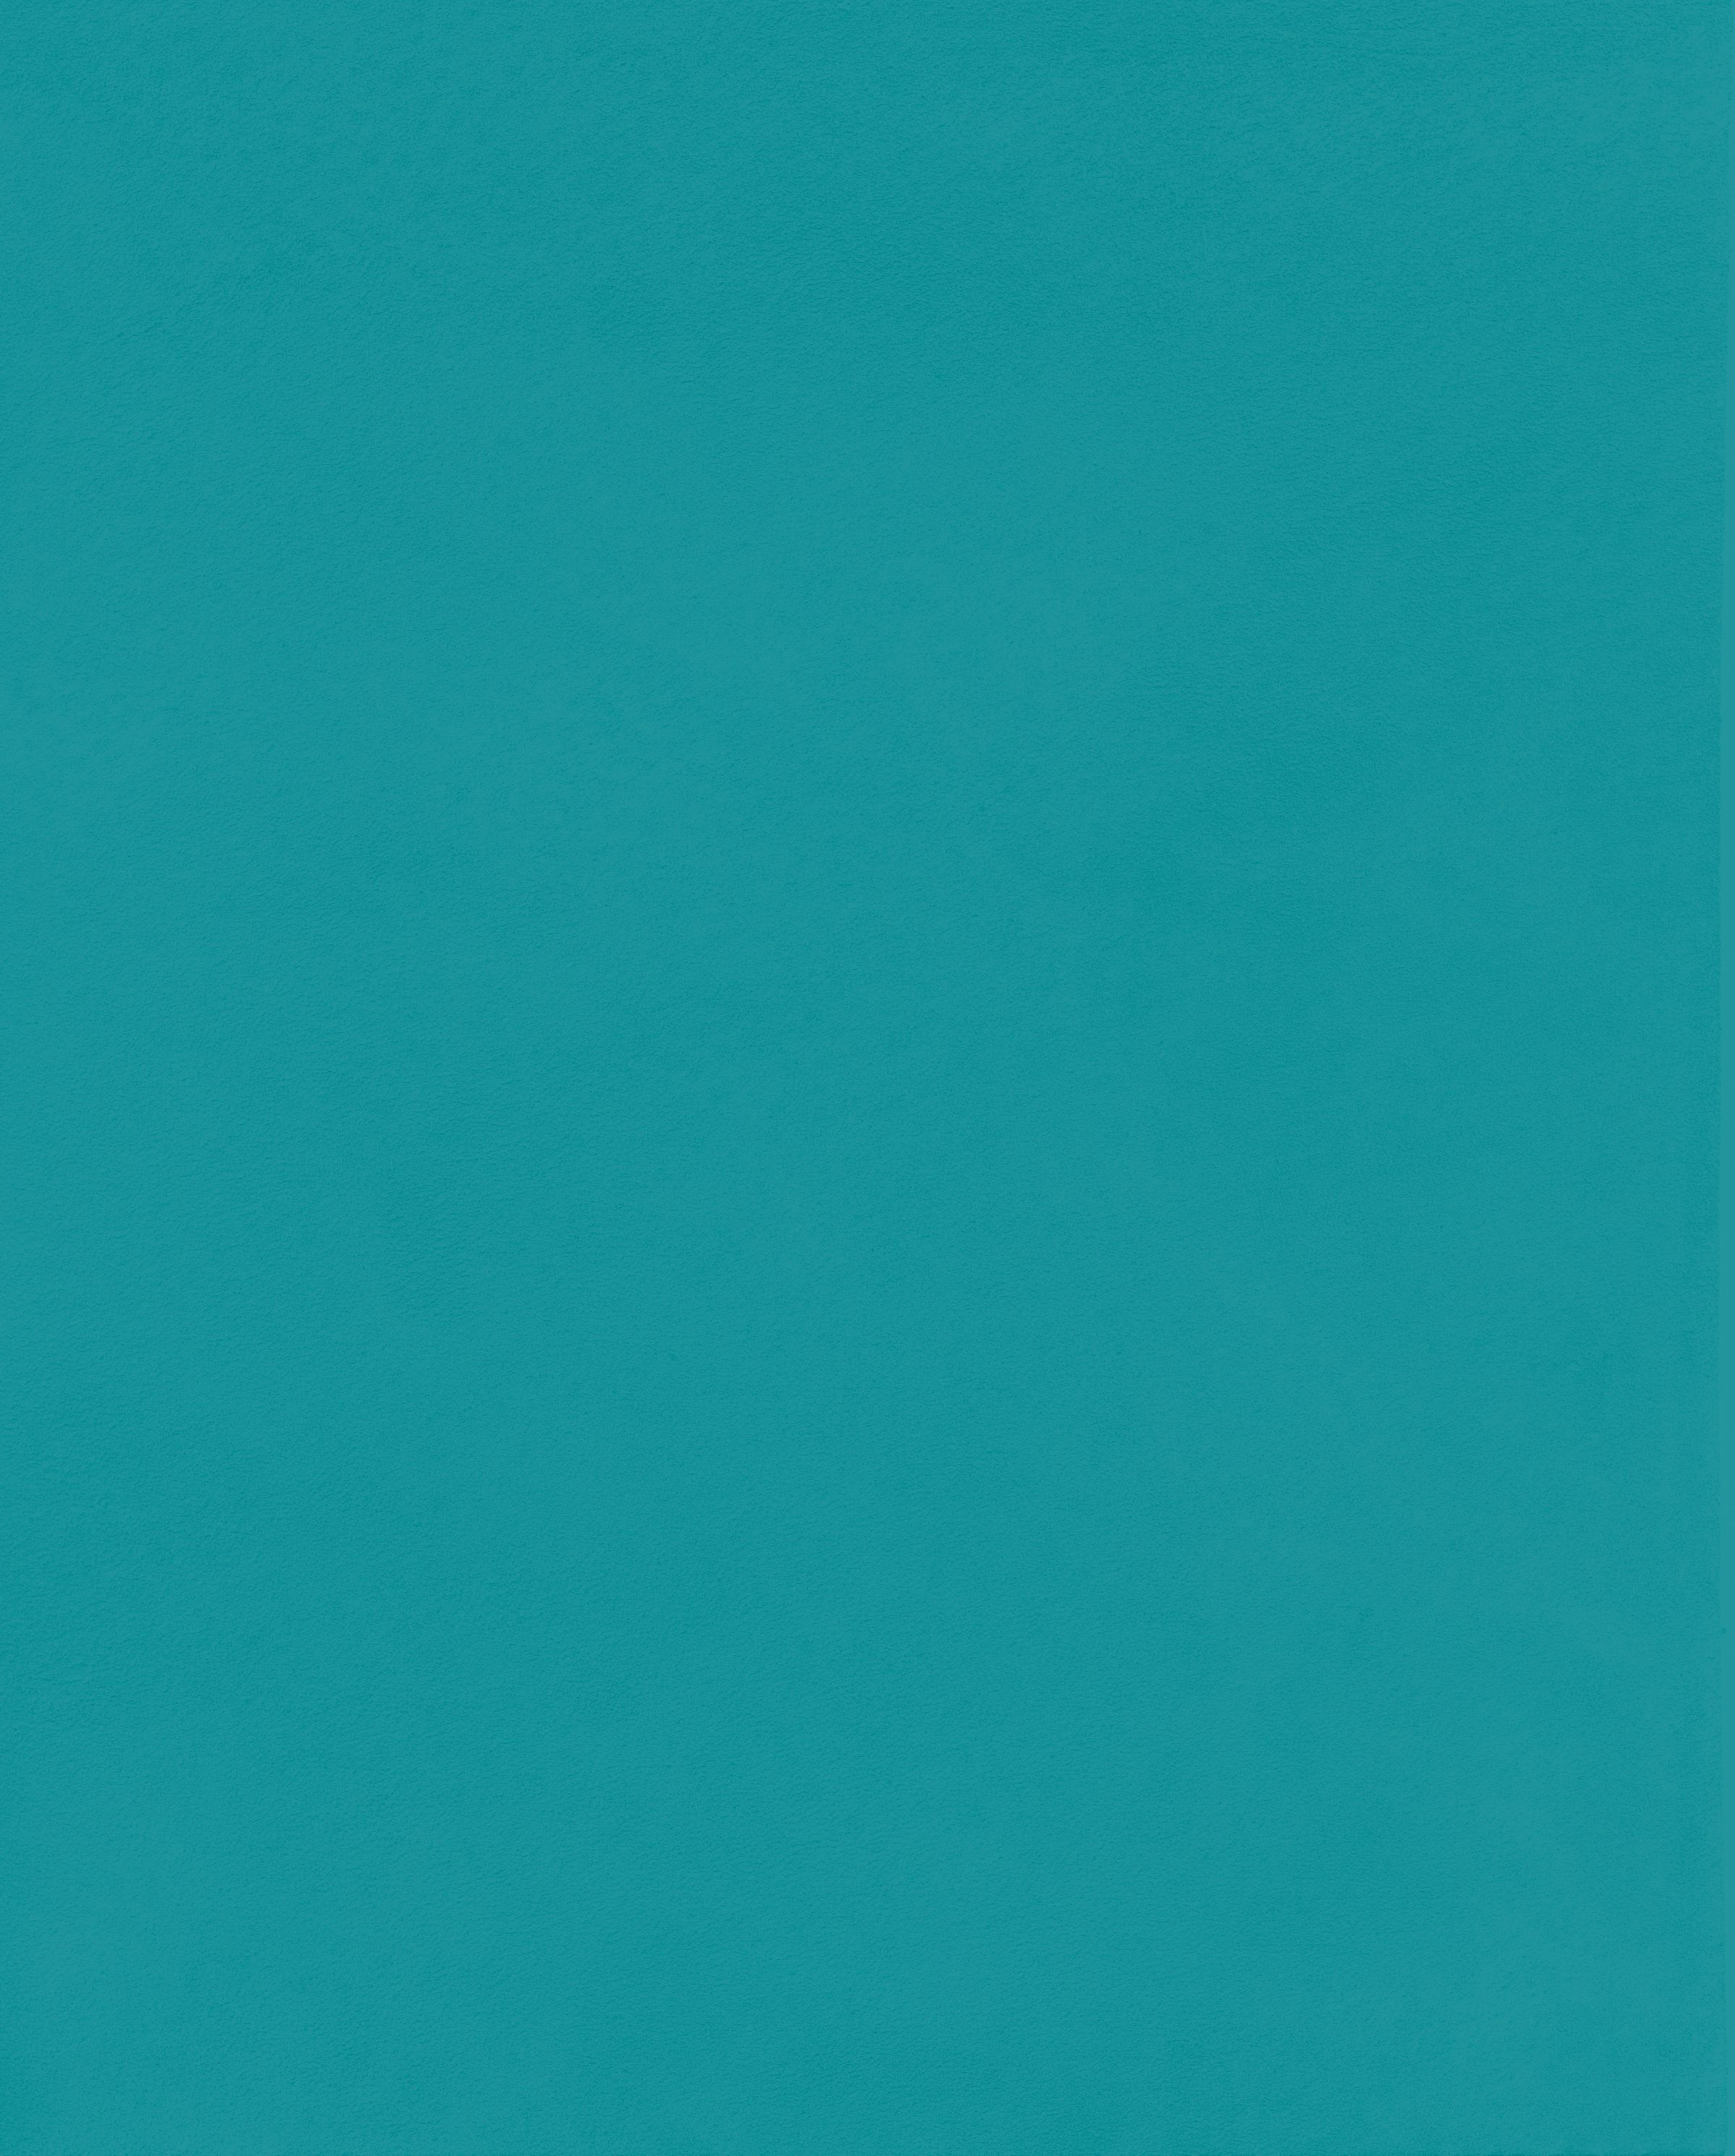 Teal blue color swatch blue pinterest teal blue What color is teal